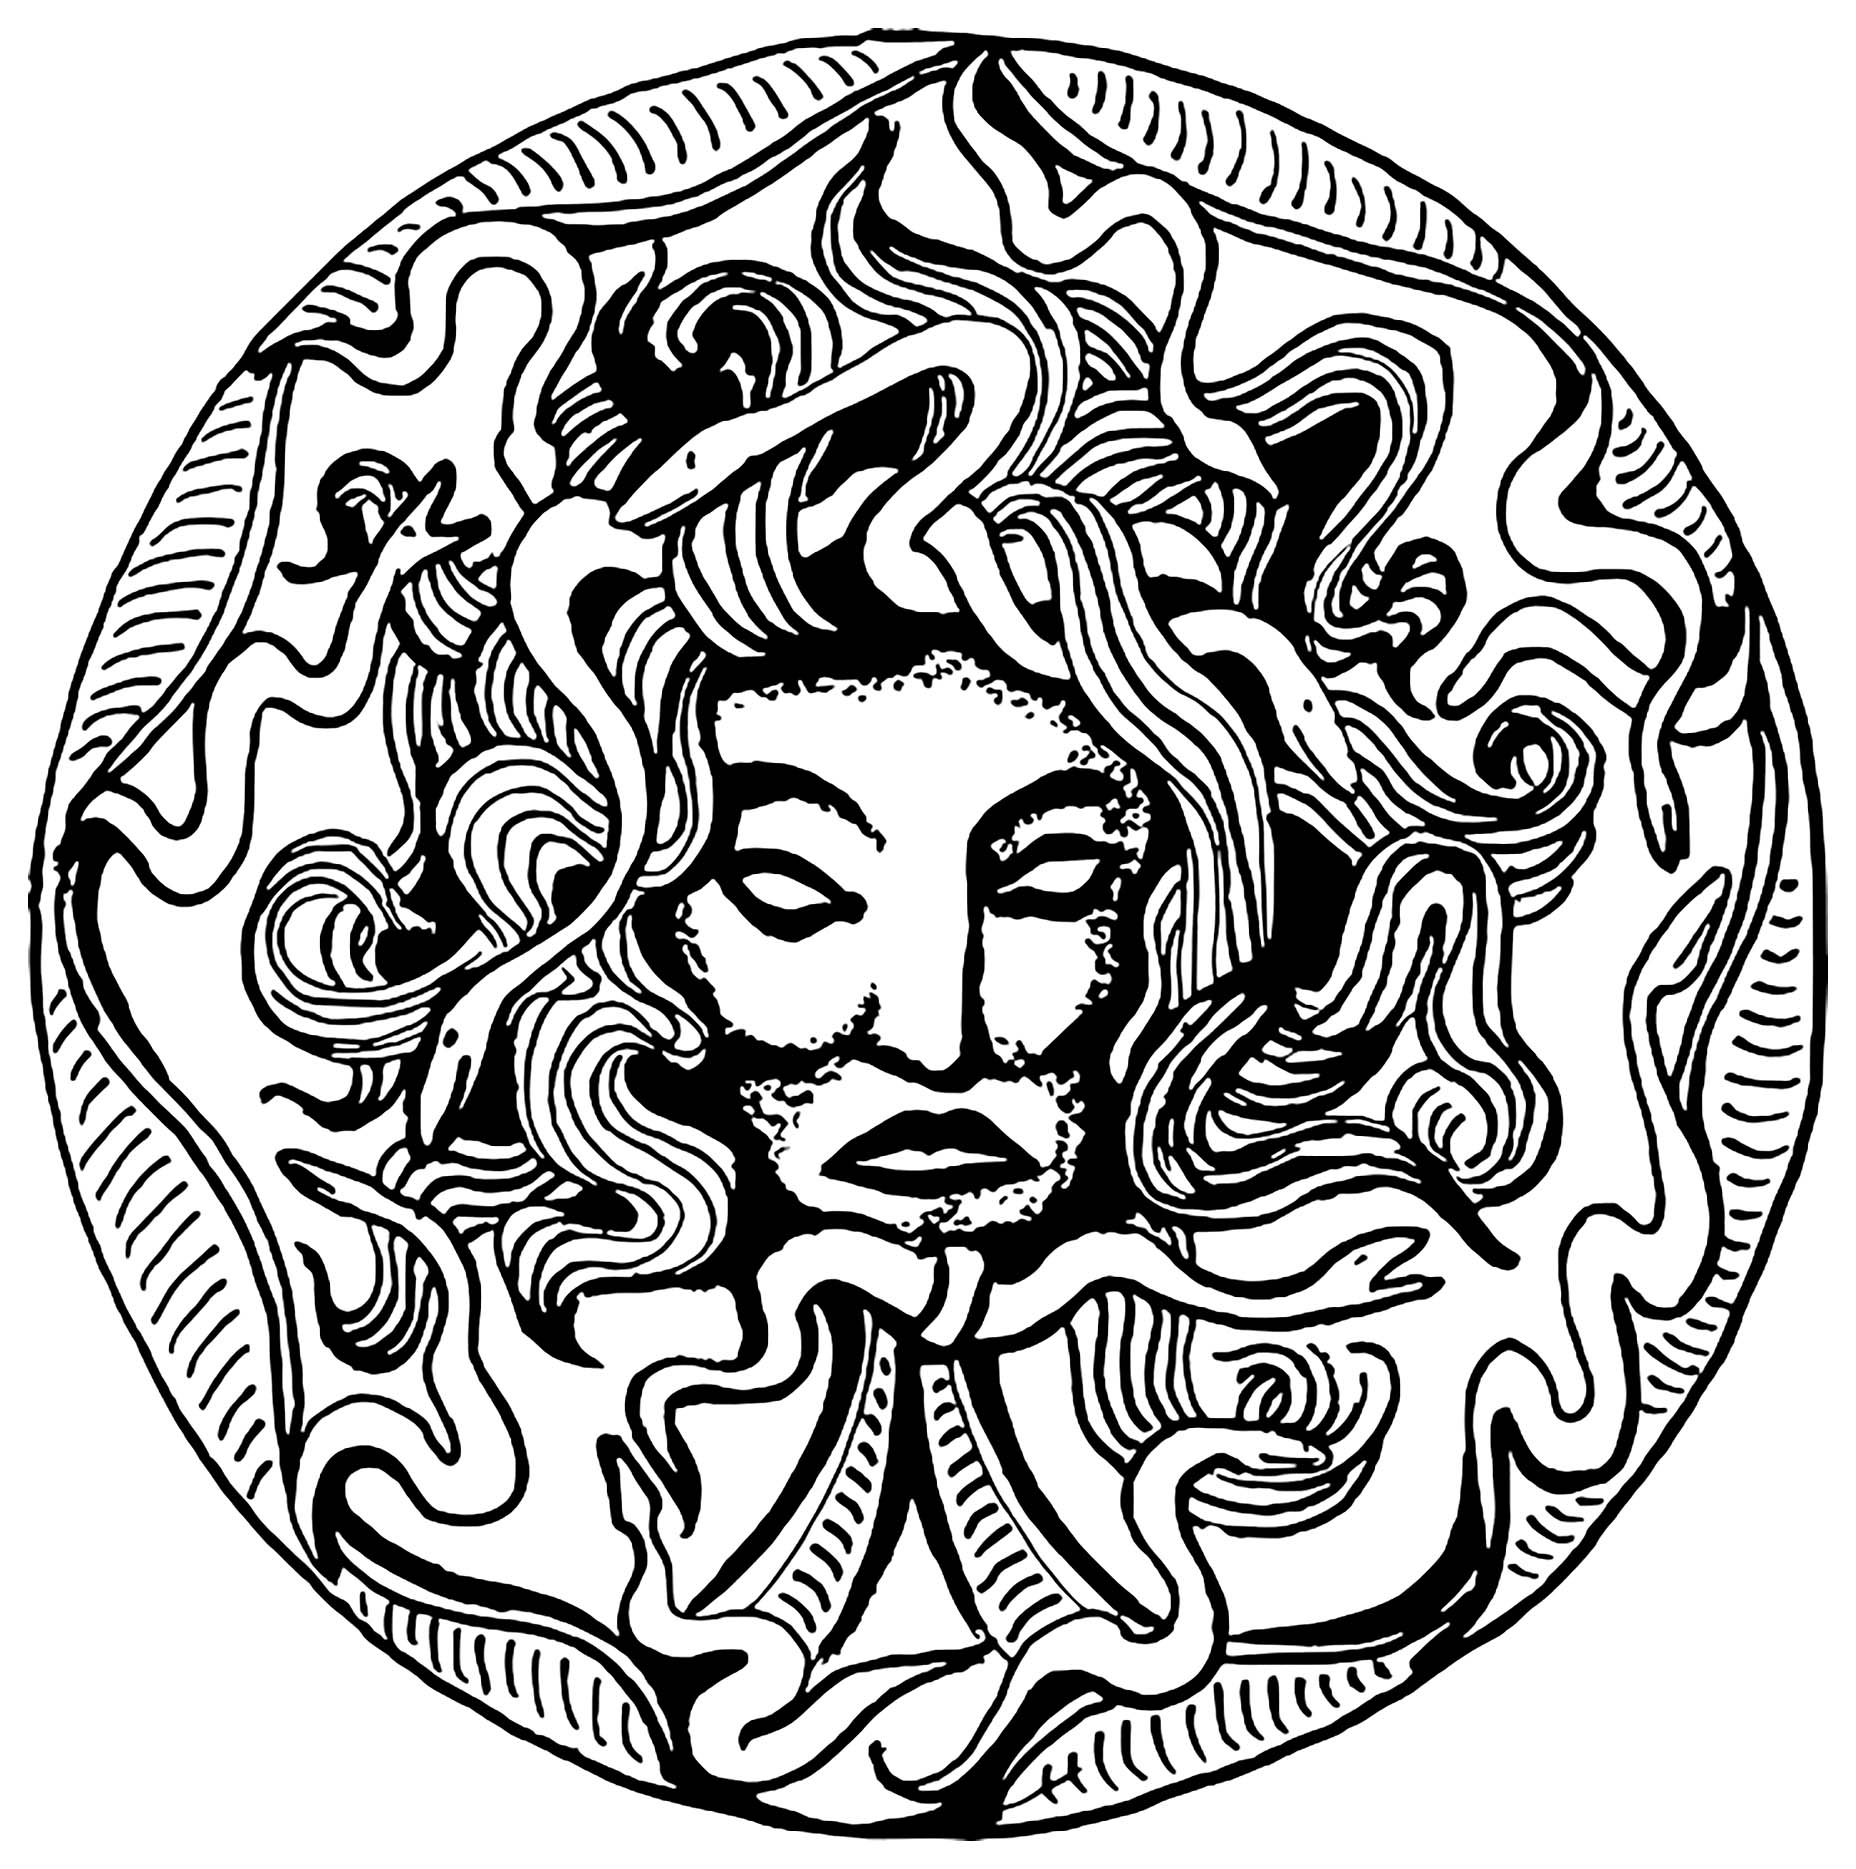 Medusa circle Ancient Greece